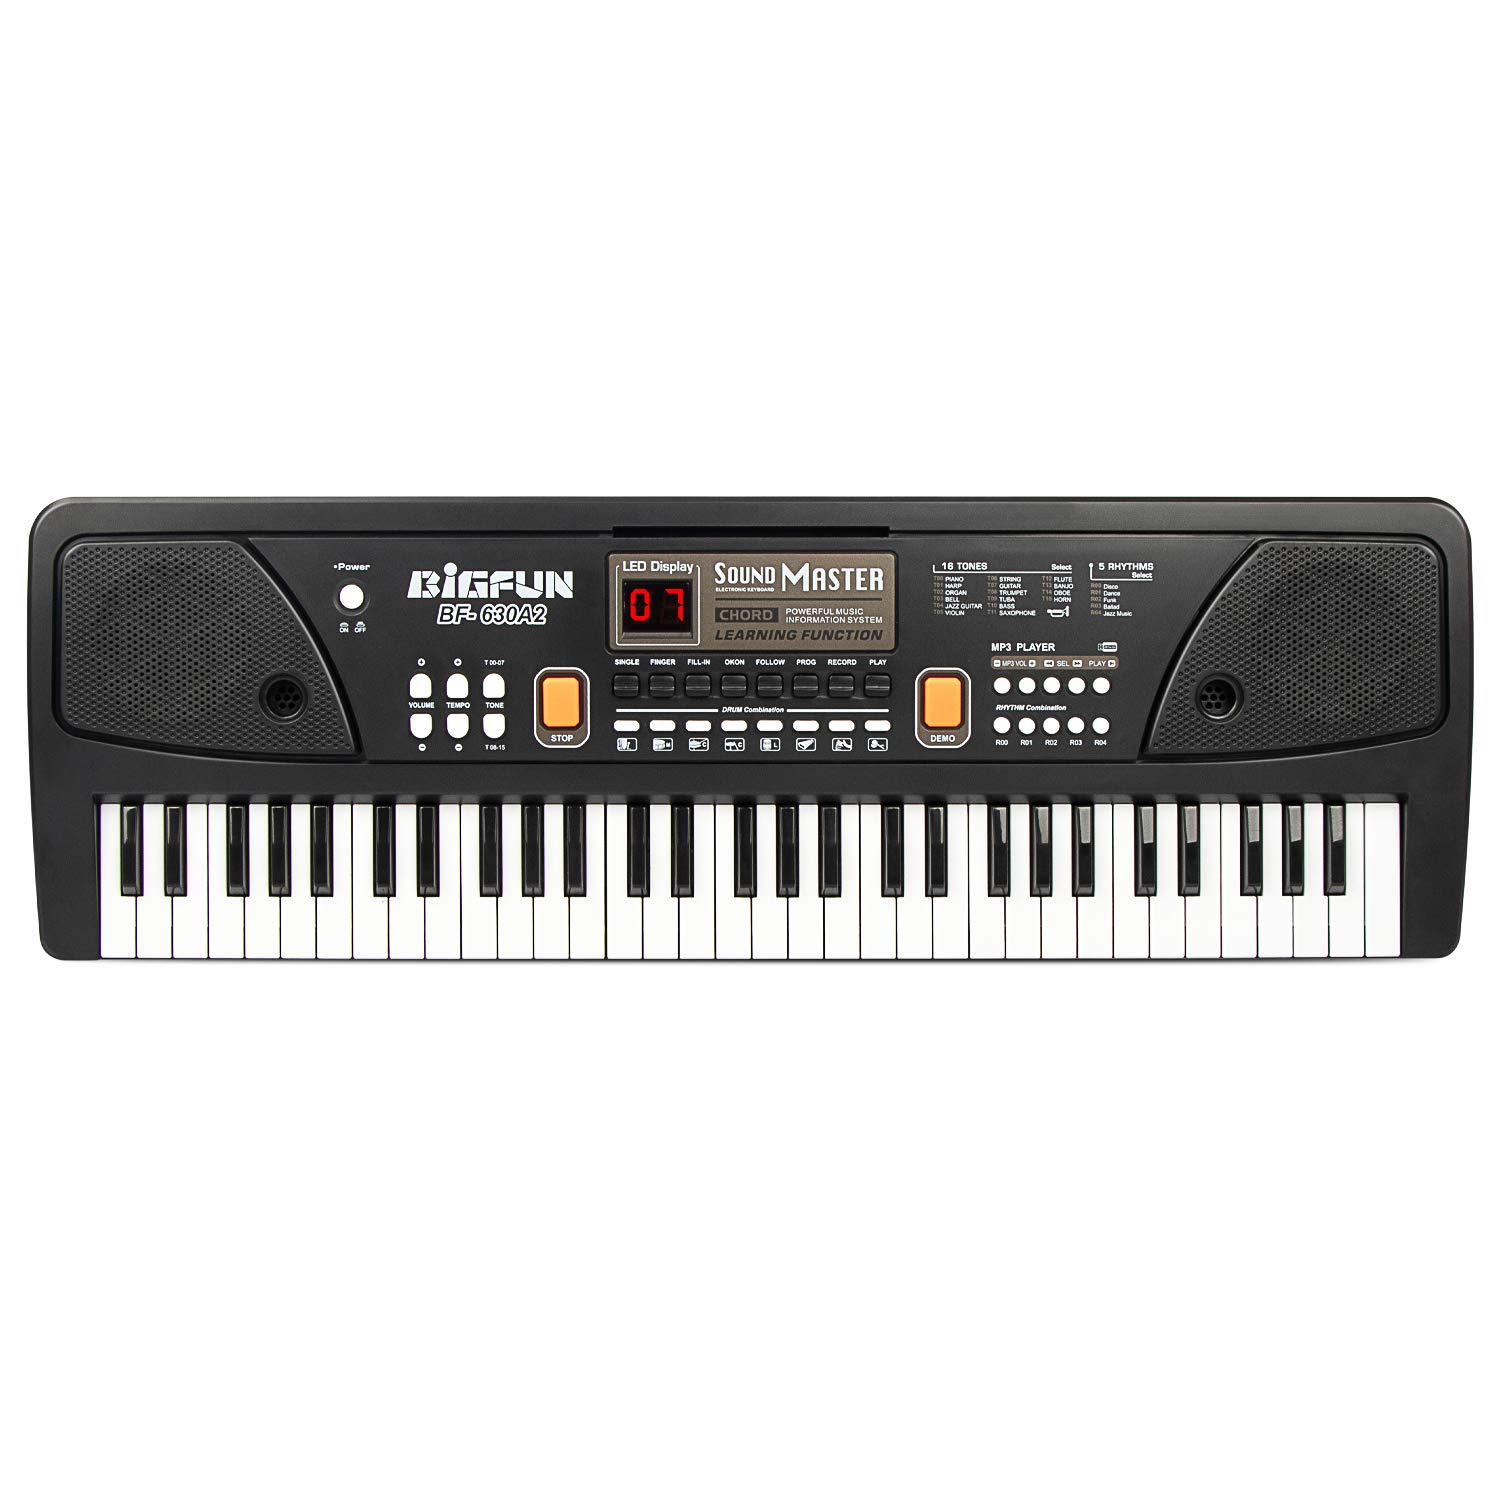 BIGFUN 61 Keys Multifunction Portable Electronic Kids Piano Musical Teaching Keyboard for Kids Children Early Learning Educational Toy with Double Speakers (Black)